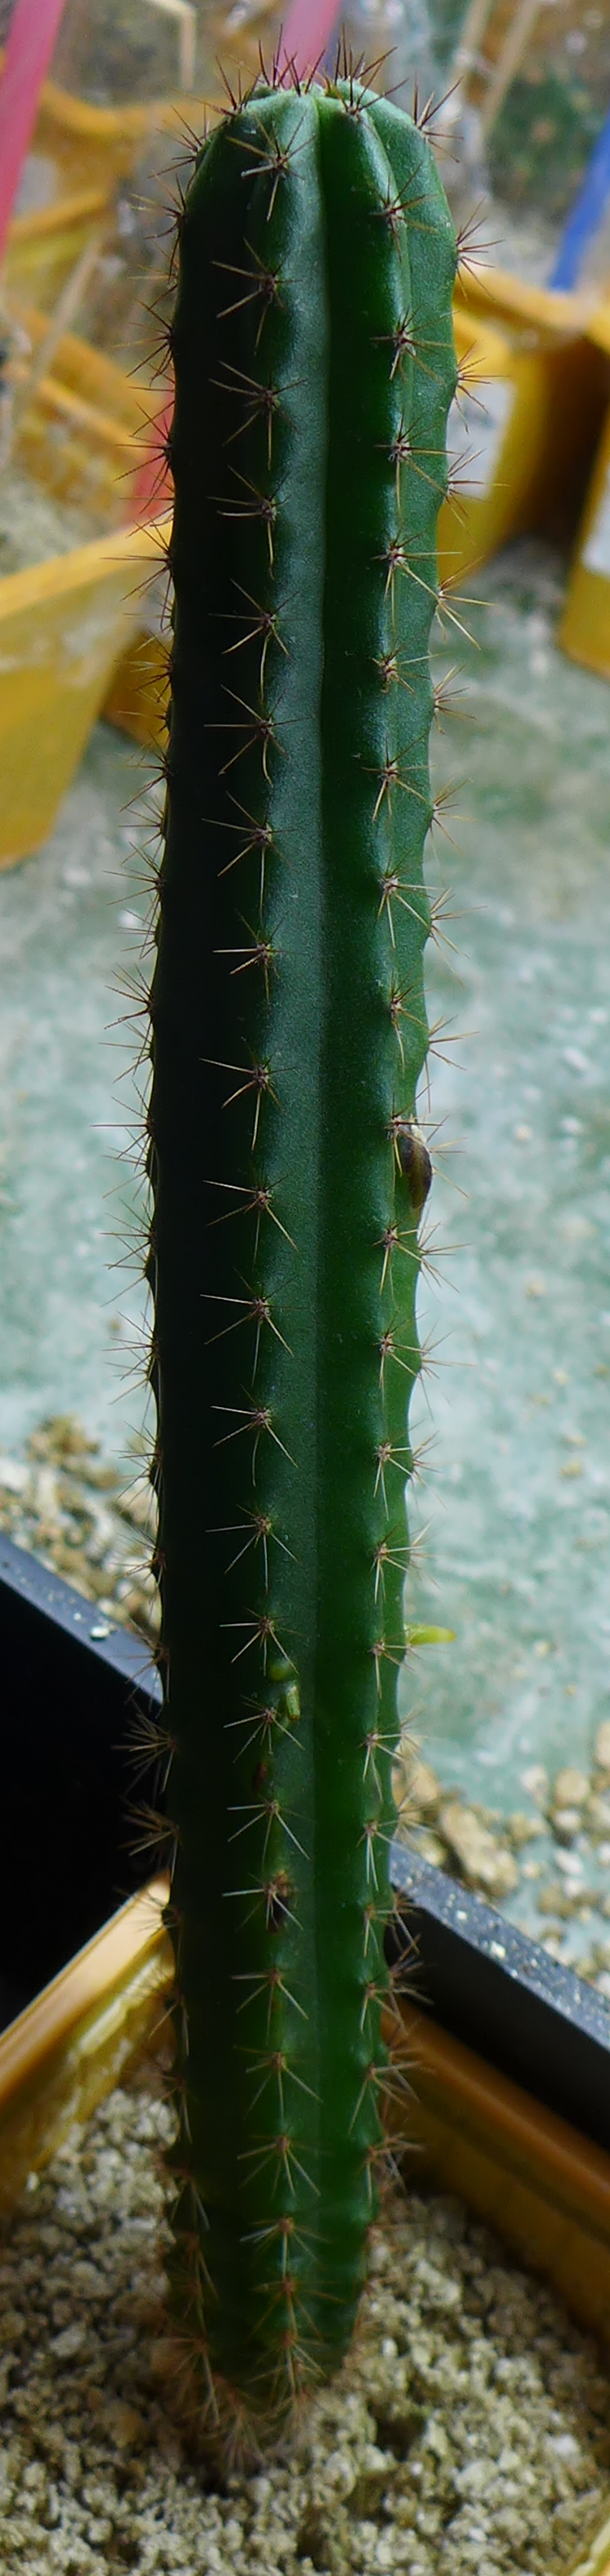 B: Sown [from Cactus 230D Columnar] 23-05-2014: germinated within two weeks;  first repotted 14-03-2015; repotted 07-02-2016.